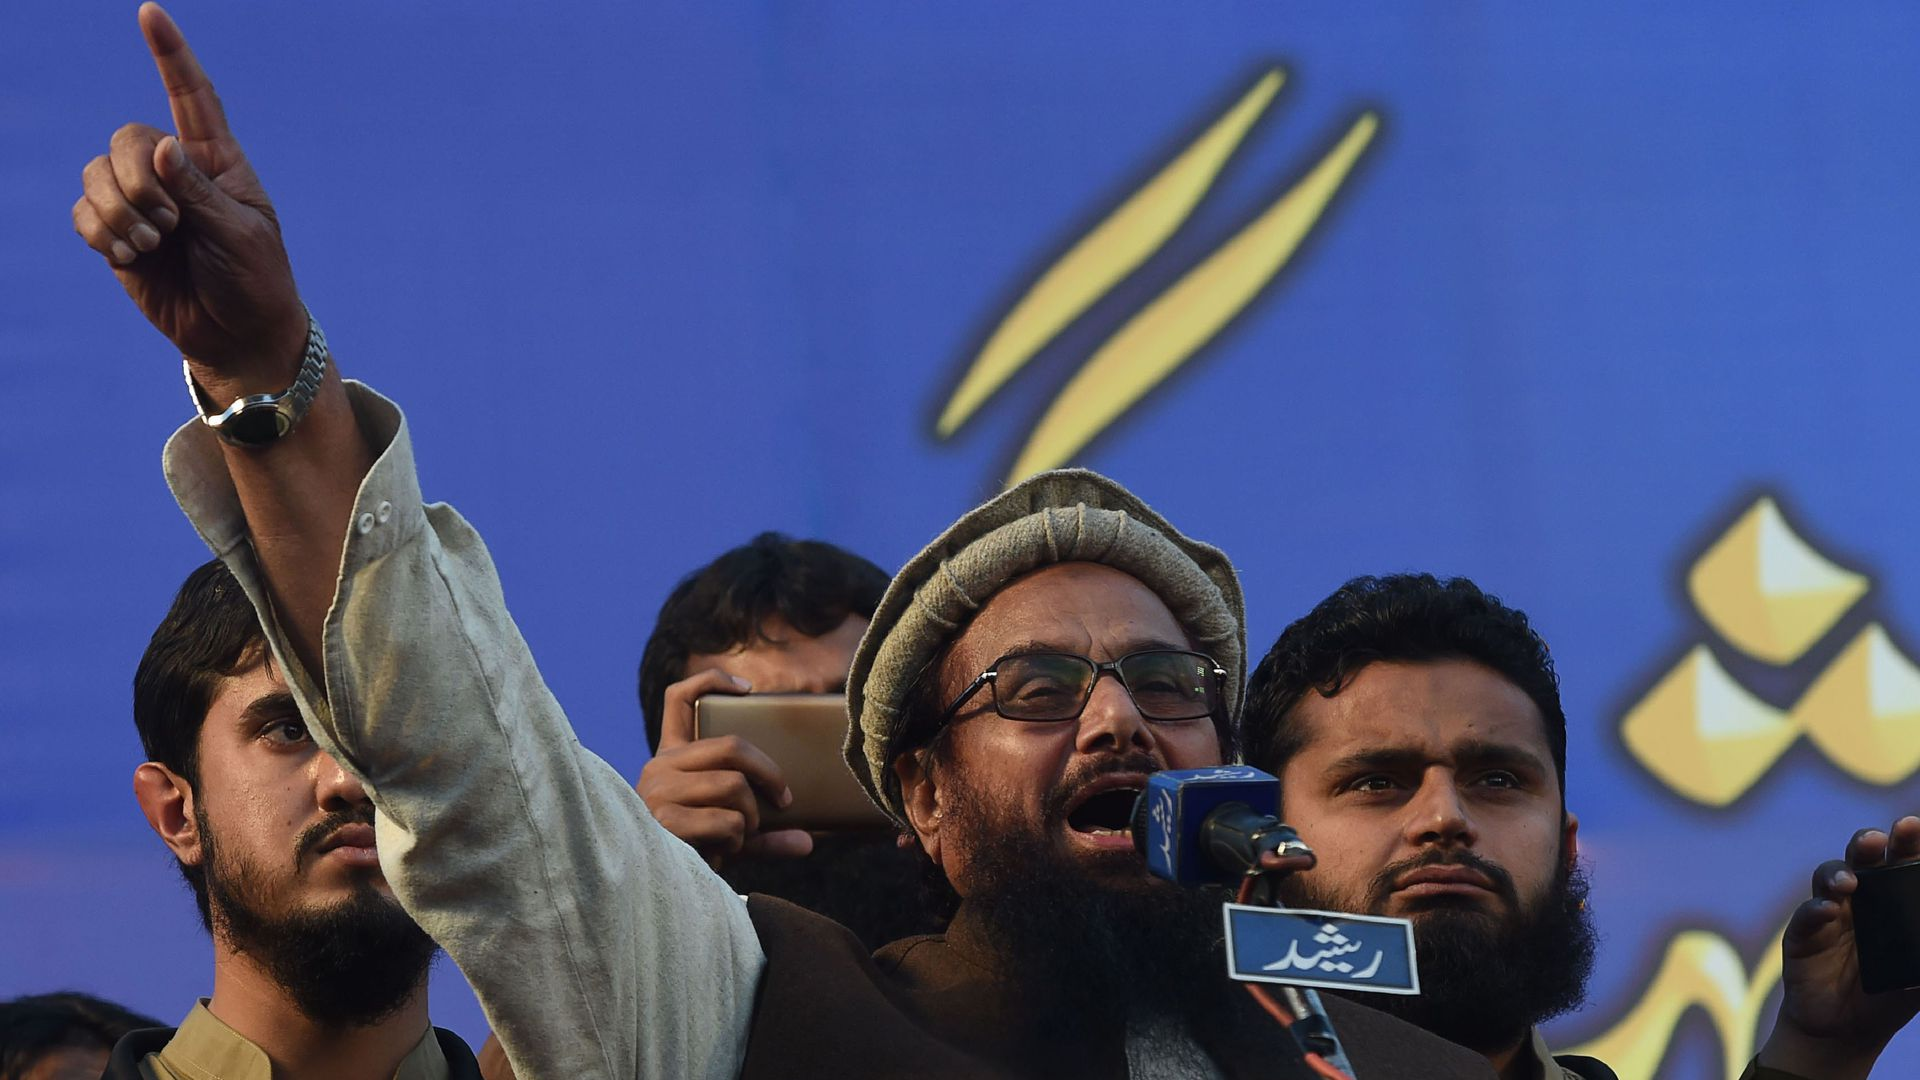 Hafiz Saeed speaking before a crowd